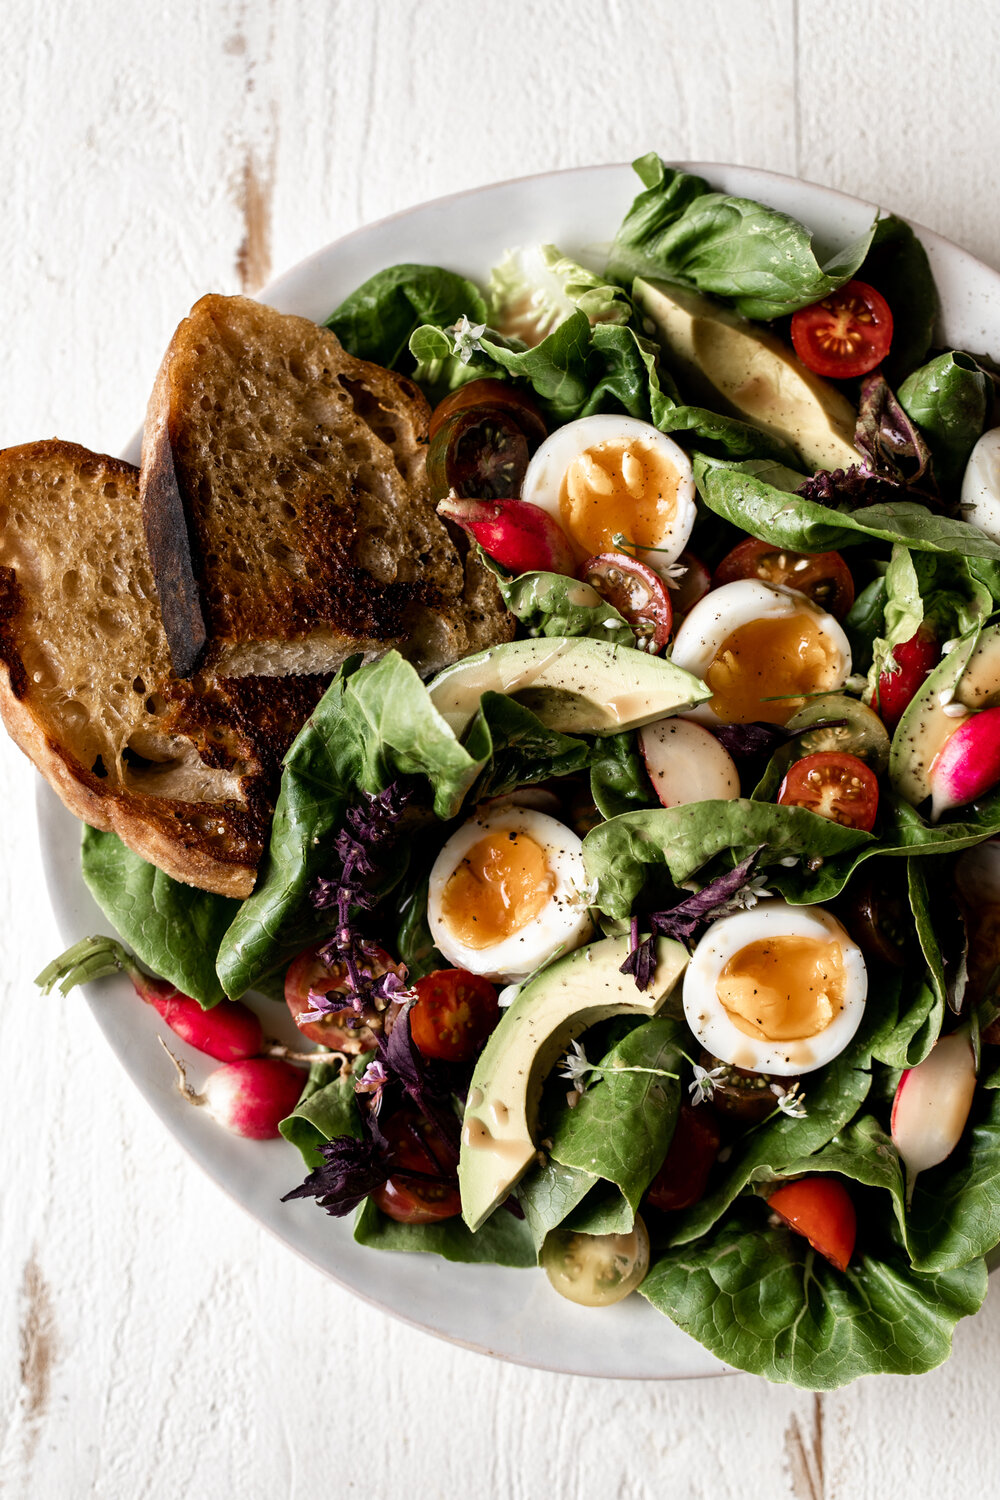 This late summer salad recipe is made with romaine lettuce, cherry tomatoes, avocado, creamy balsamic dressing and jammy soft-boiled eggs.